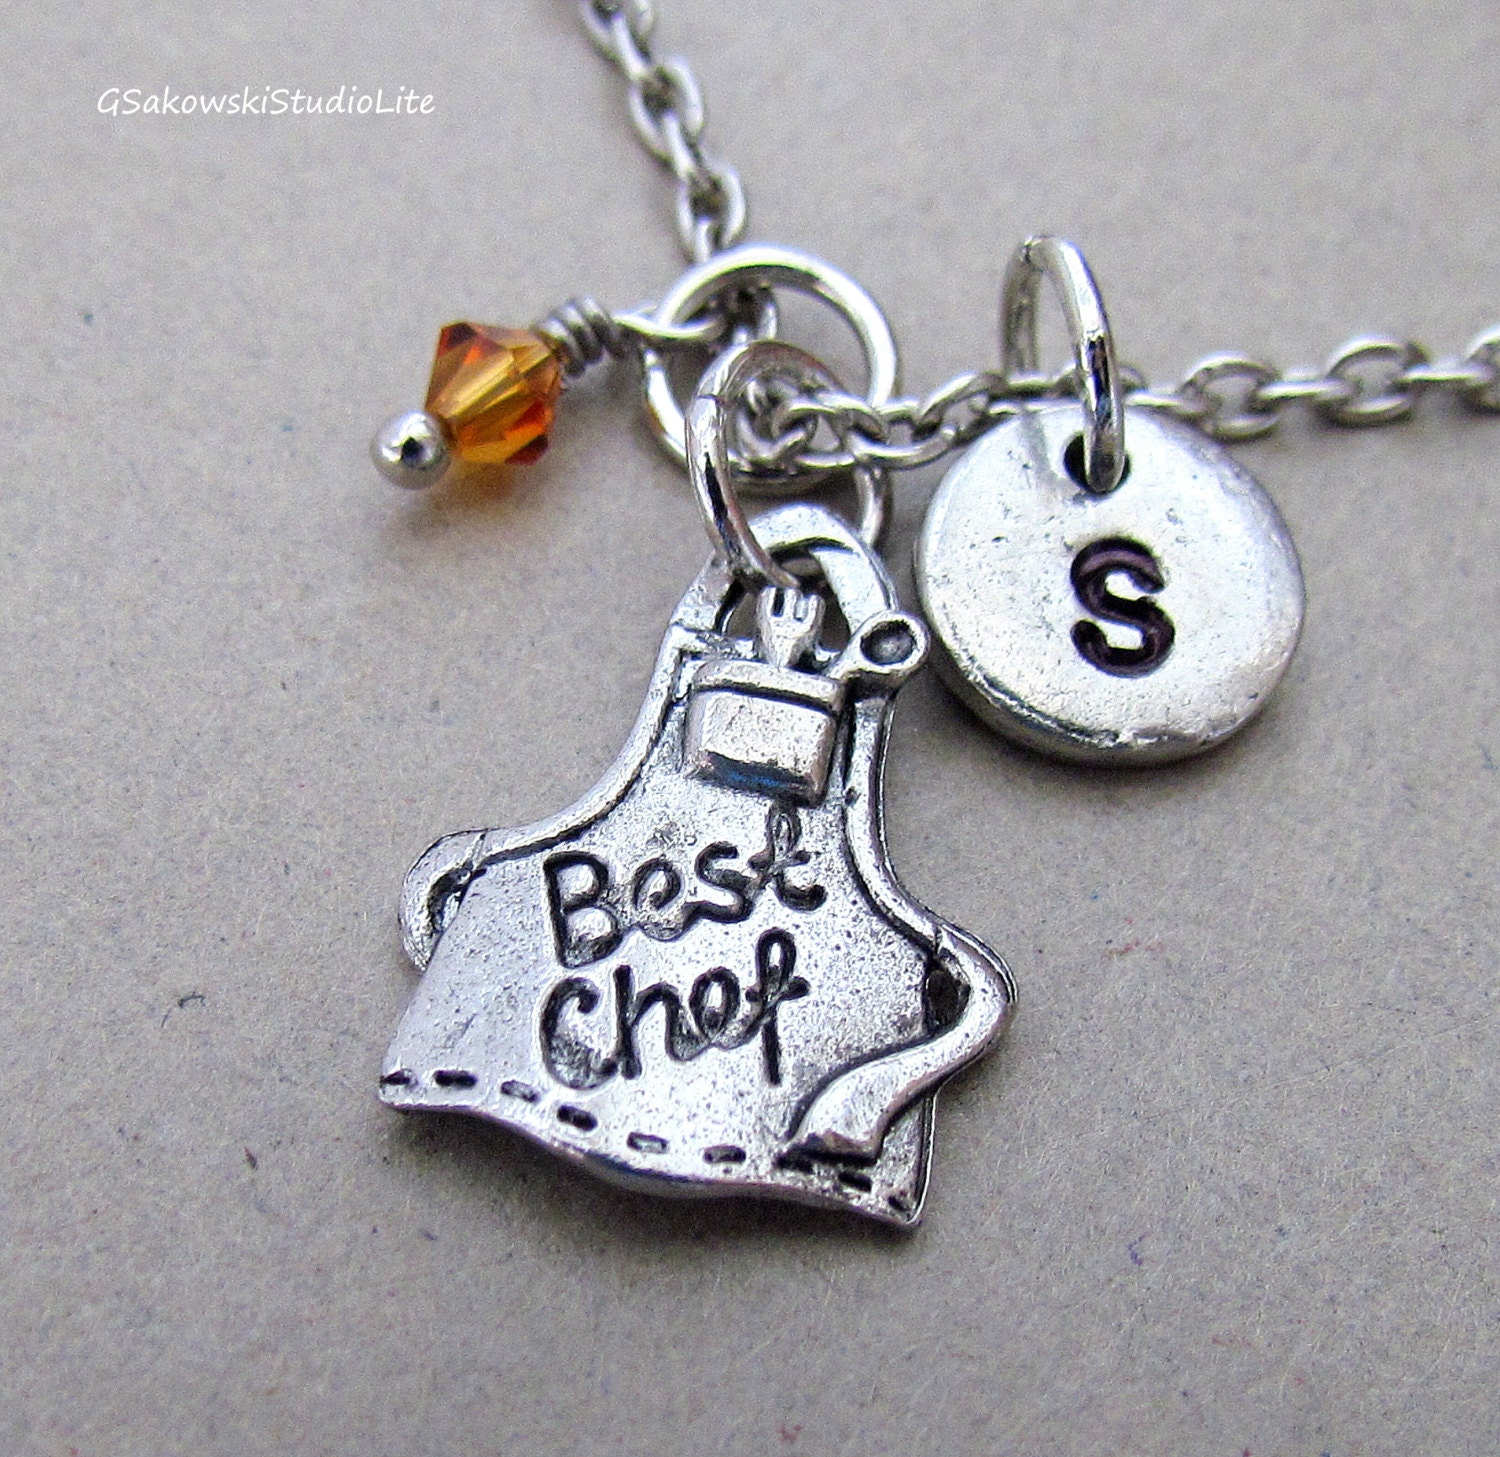 best chef apron charm necklace personalized by